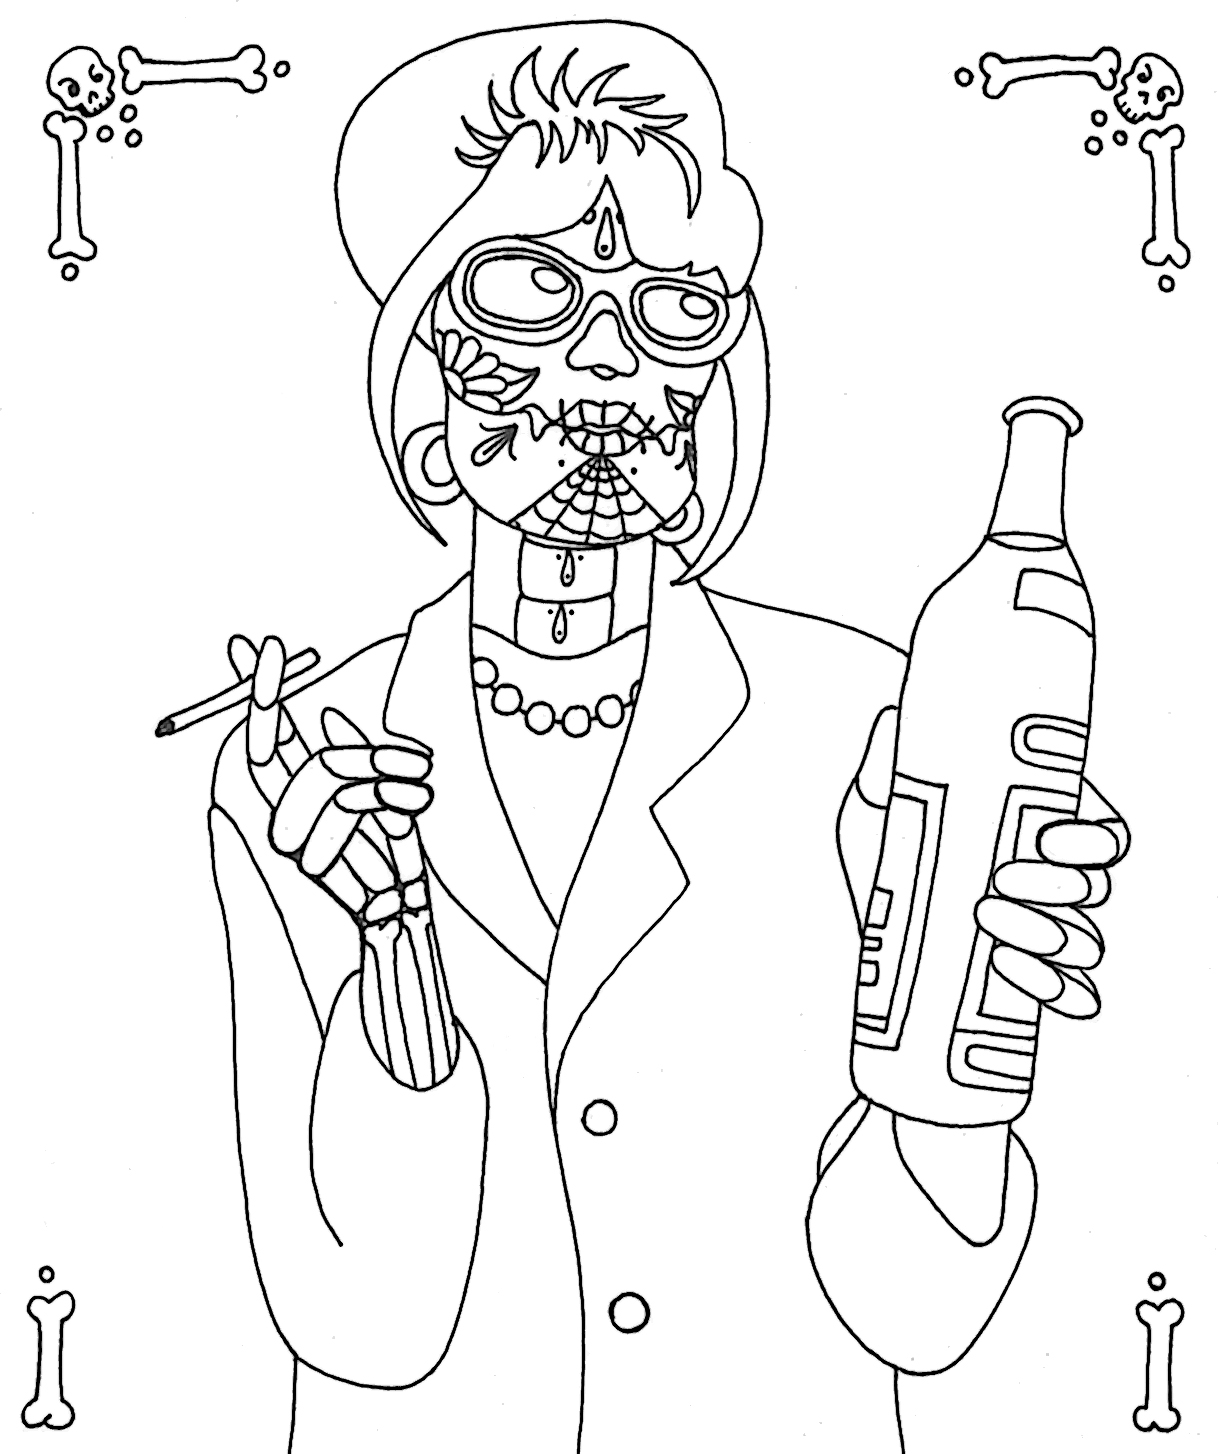 ddlpatsy in addition hipster coloring book by thaneeya mcardle thaneeya  on hipster coloring pages moreover hipster coloring pages trafic booster biz on hipster coloring pages additionally hipster coloring book coloring free download printable coloring pages on hipster coloring pages likewise the hipster coloring book charlotte farmer 9781454917441 amazon on hipster coloring pages